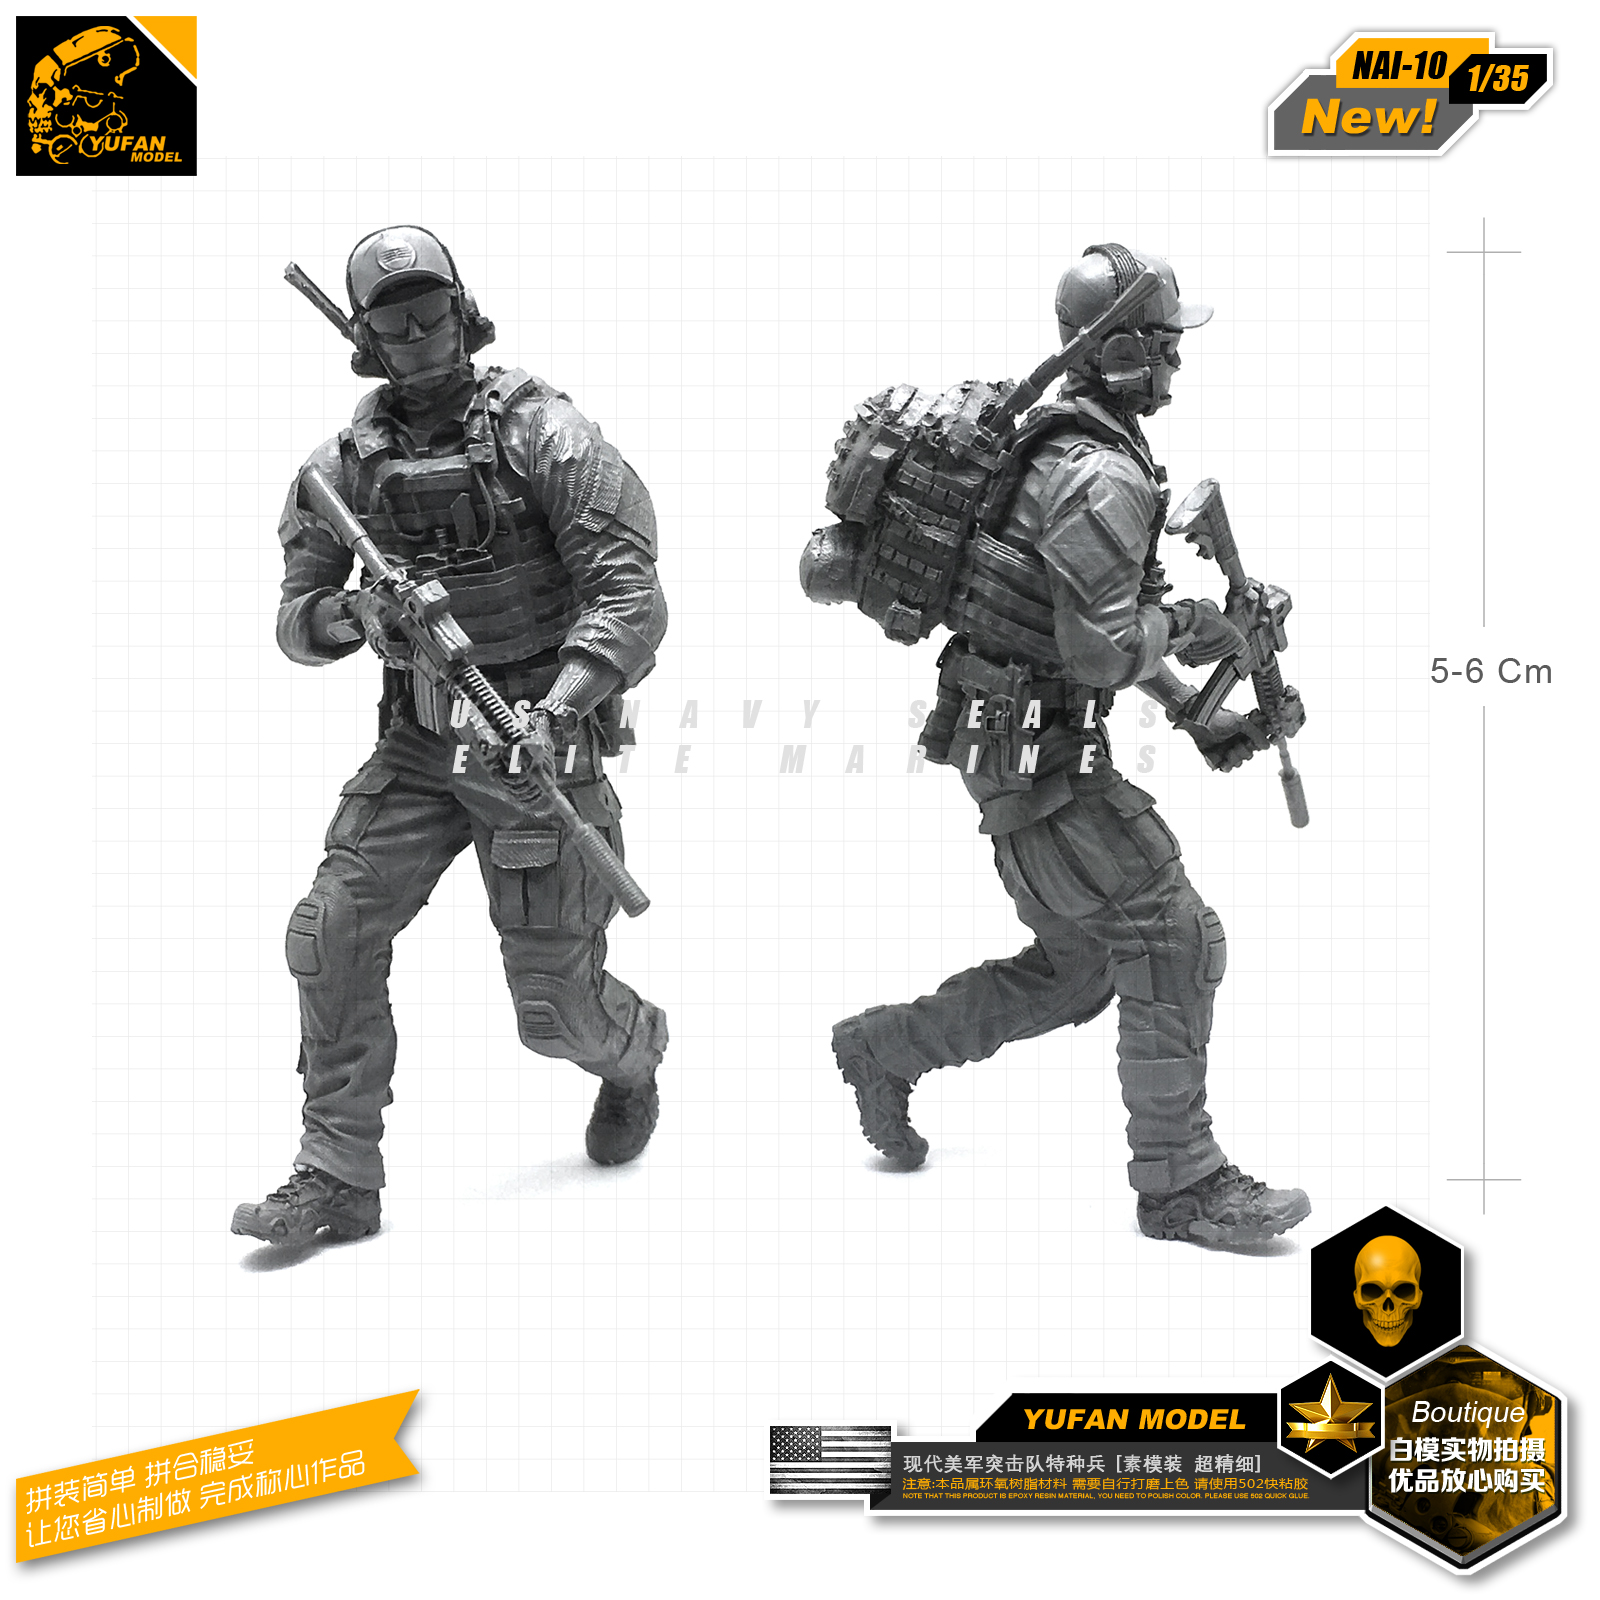 Yufan Model <font><b>1/35</b></font> <font><b>Resin</b></font> Soldier Model <font><b>Accessories</b></font> Kits For Modern American Seals Unmounted Nai-10 image